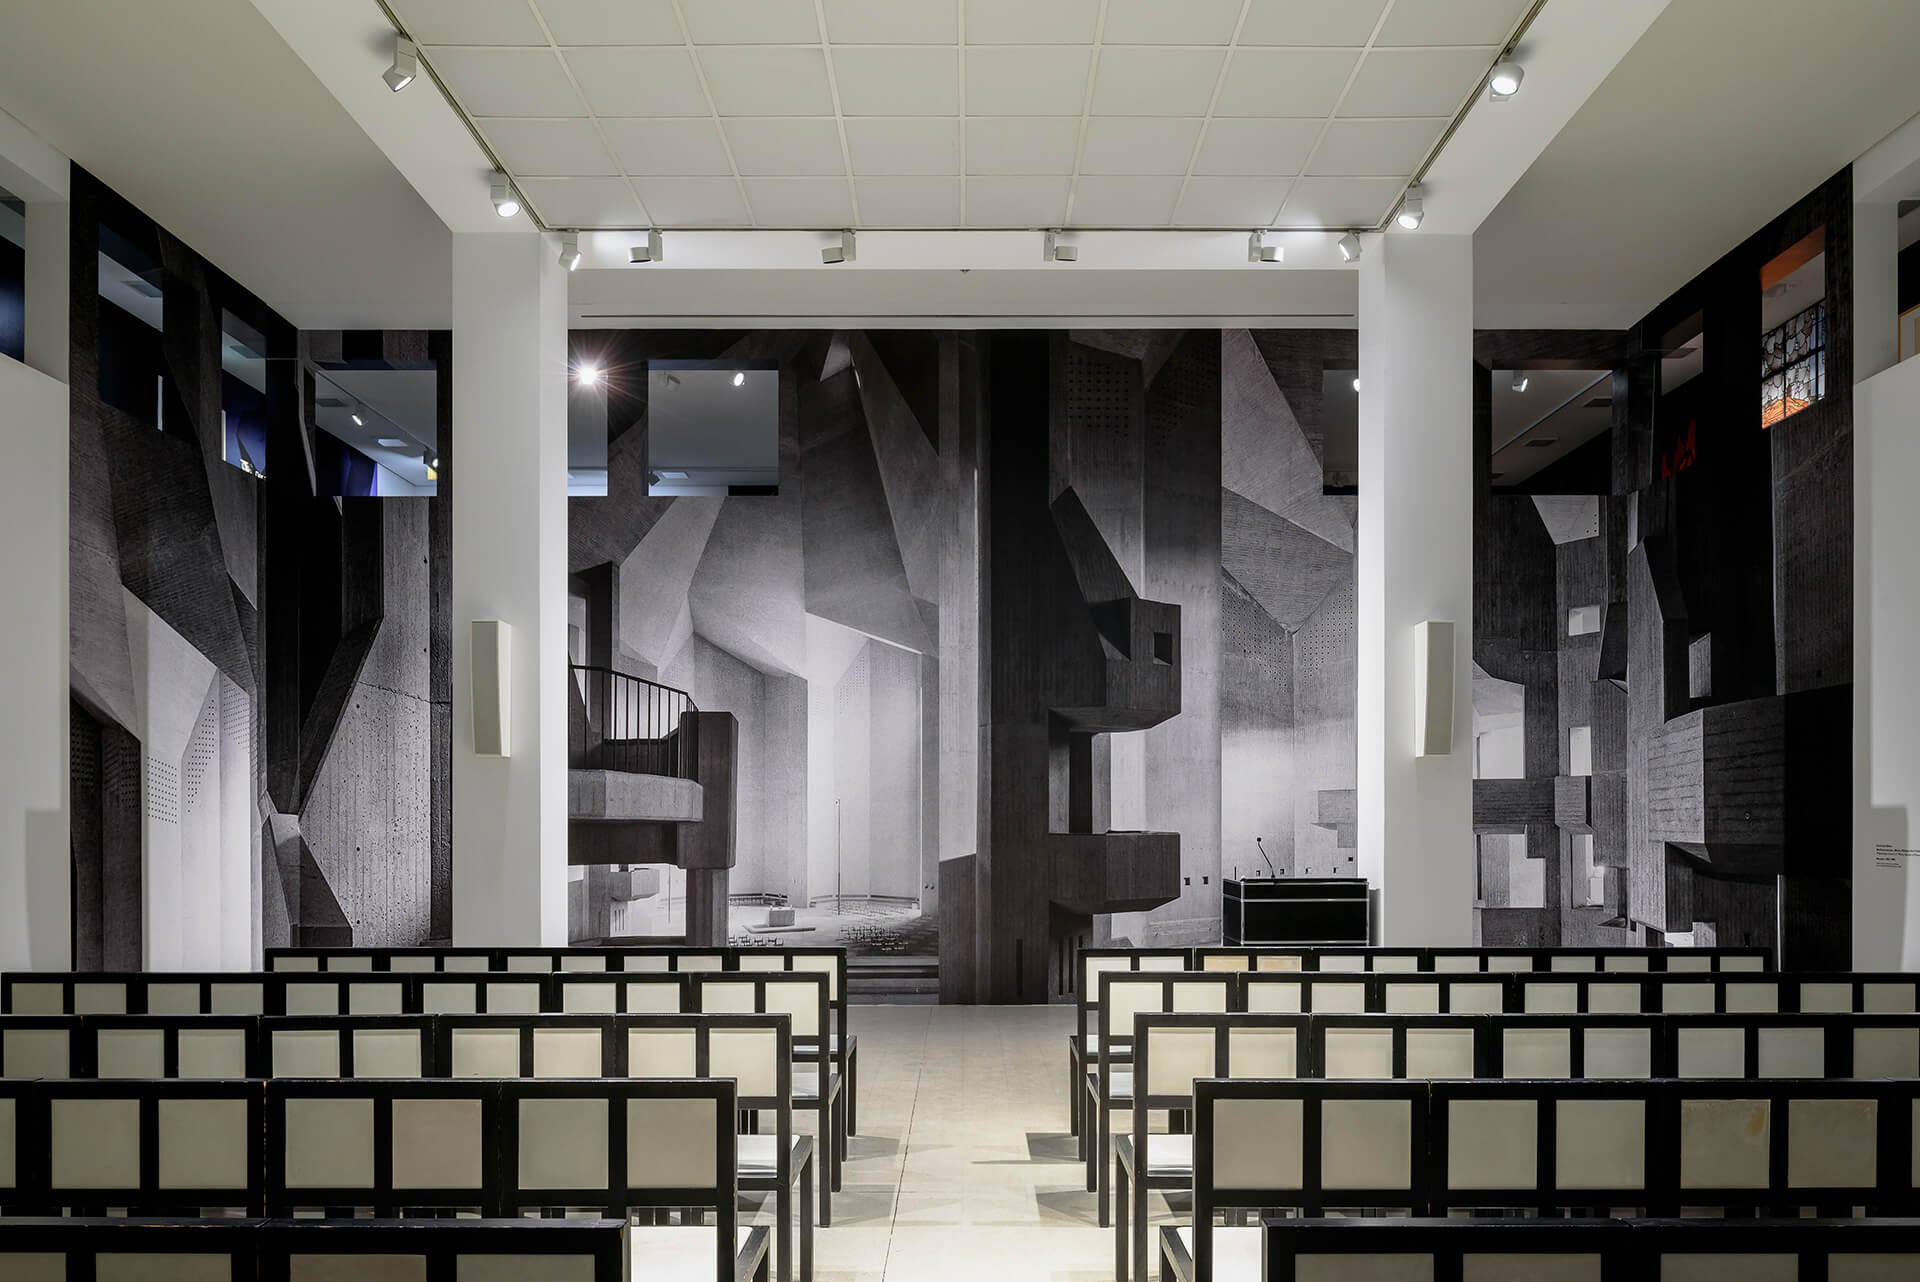 The wall installation creates an impression of the interiors of the church | BÖHM100: The Concrete Cathedral of Neviges | Deutsches Architekturmuseum (DAM) | STIRworld